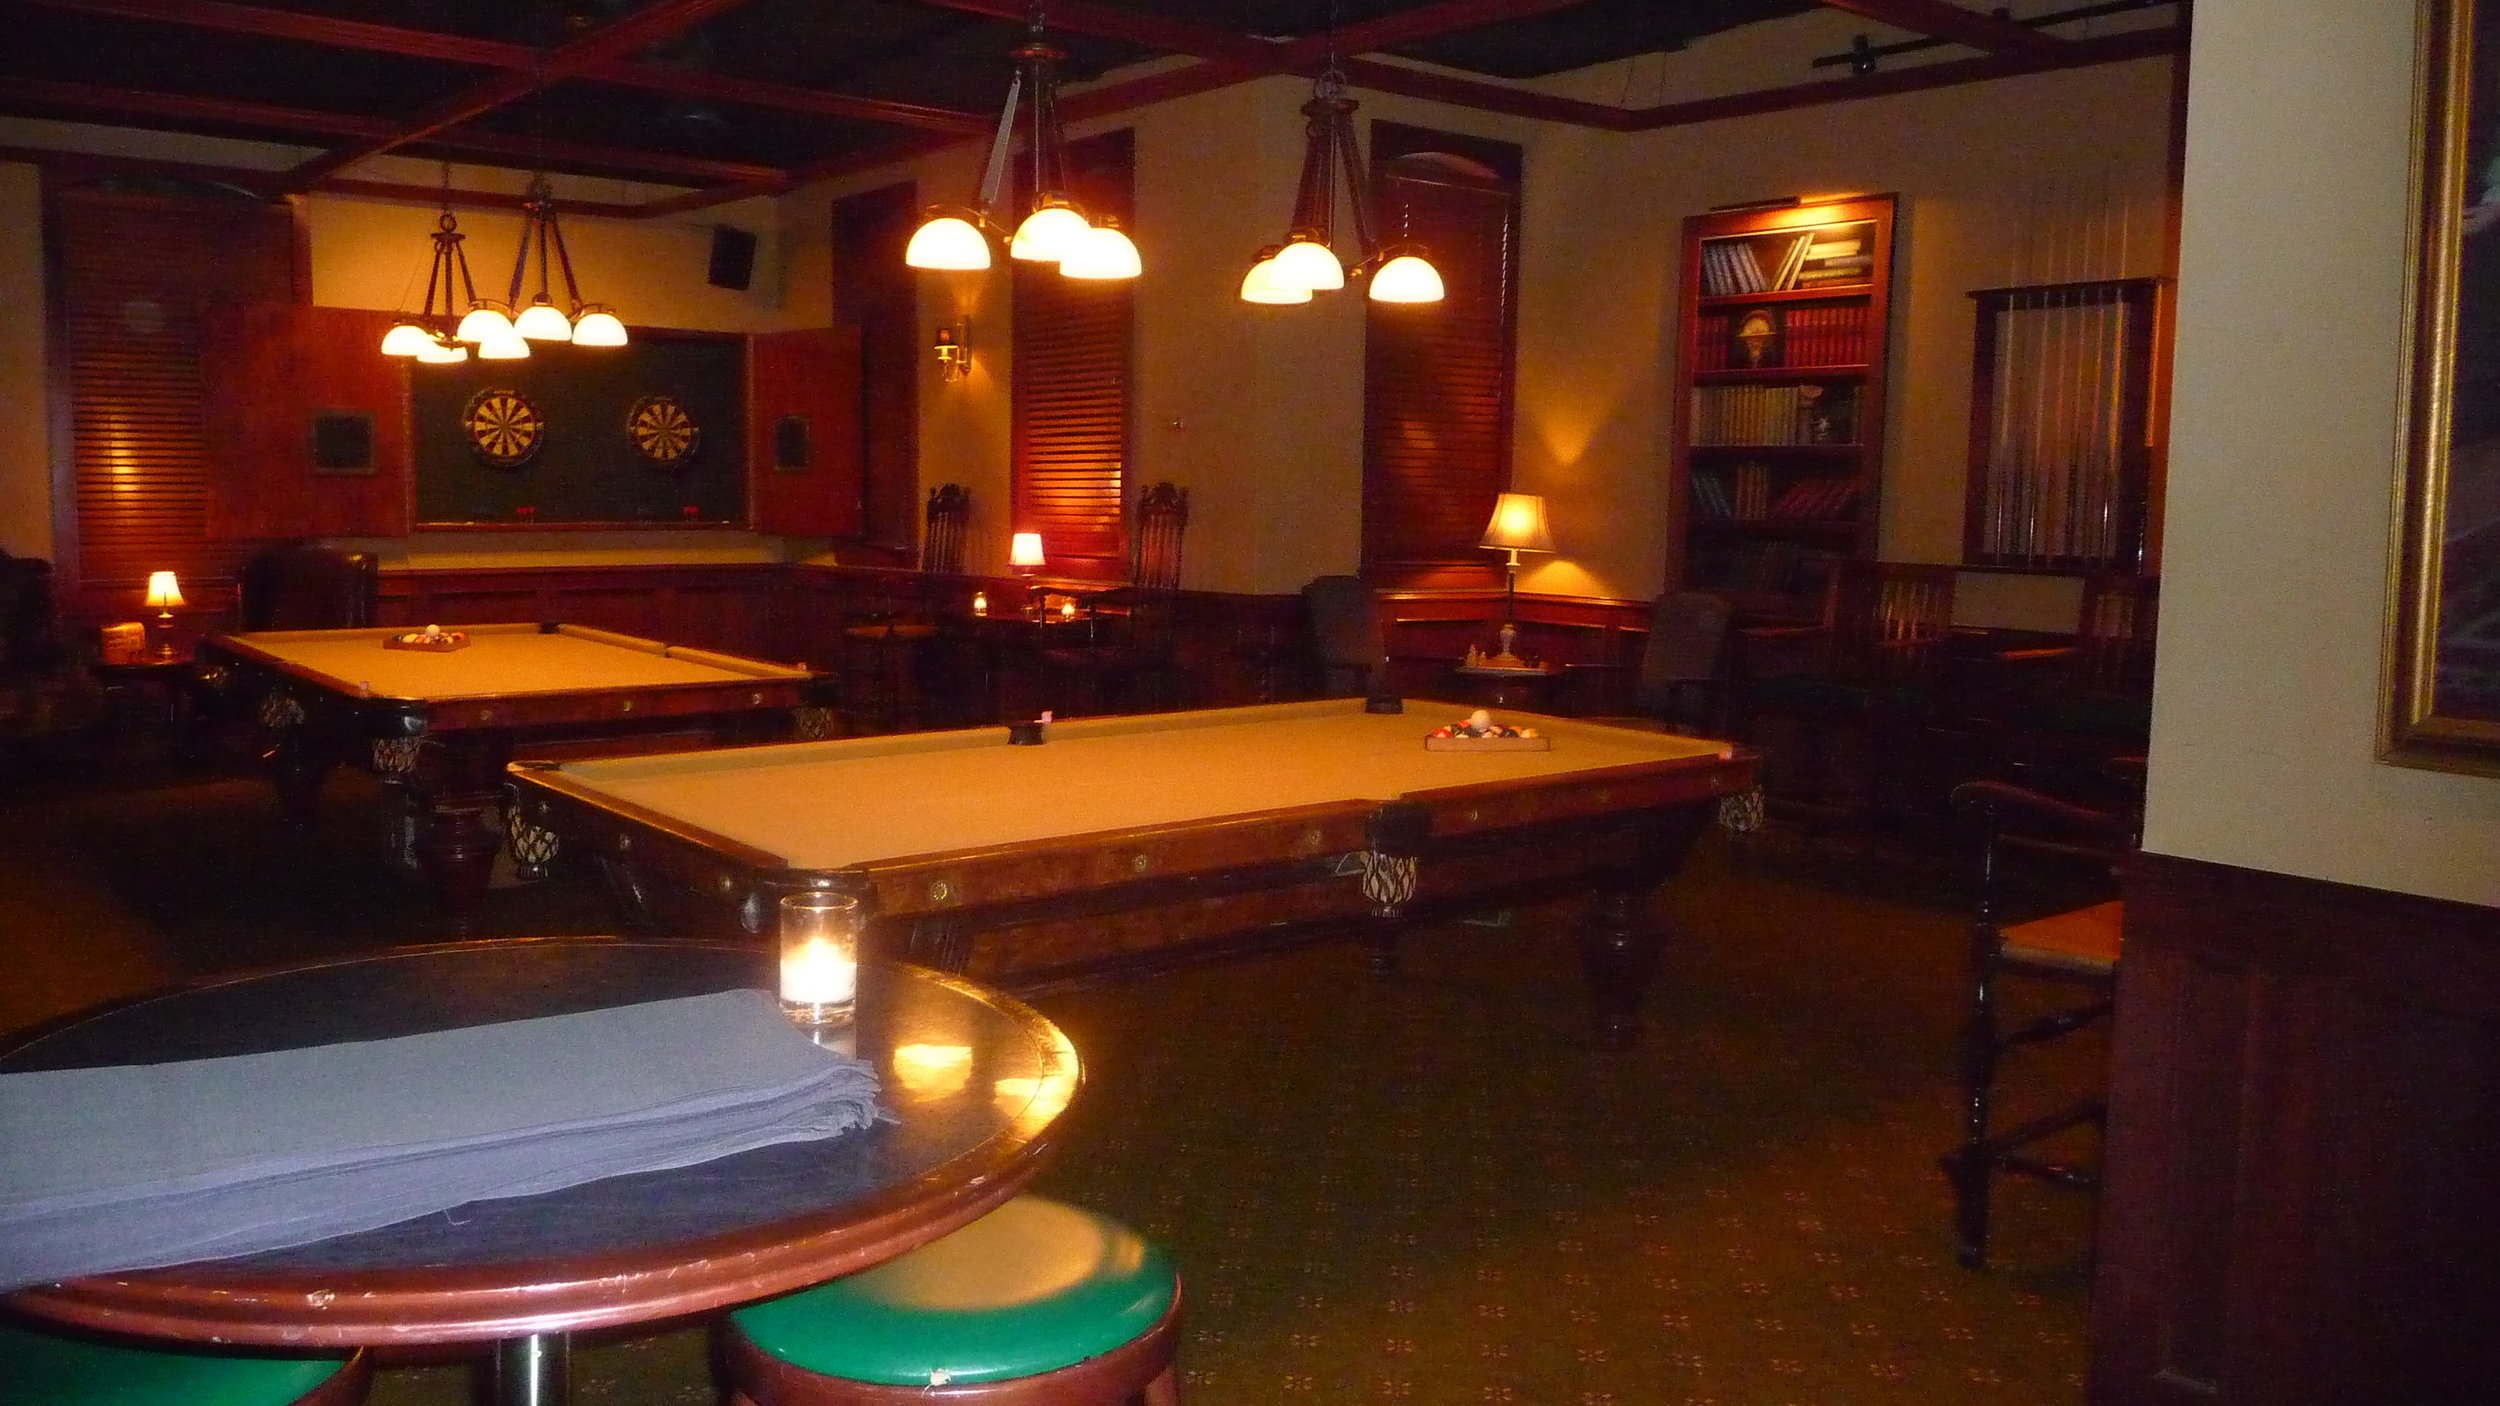 The second, more intimate, pool room at Uptown Billiards. Fun to reserve a table by the hour for date night or a group of friends in a well-appointed restaurant and lounge.